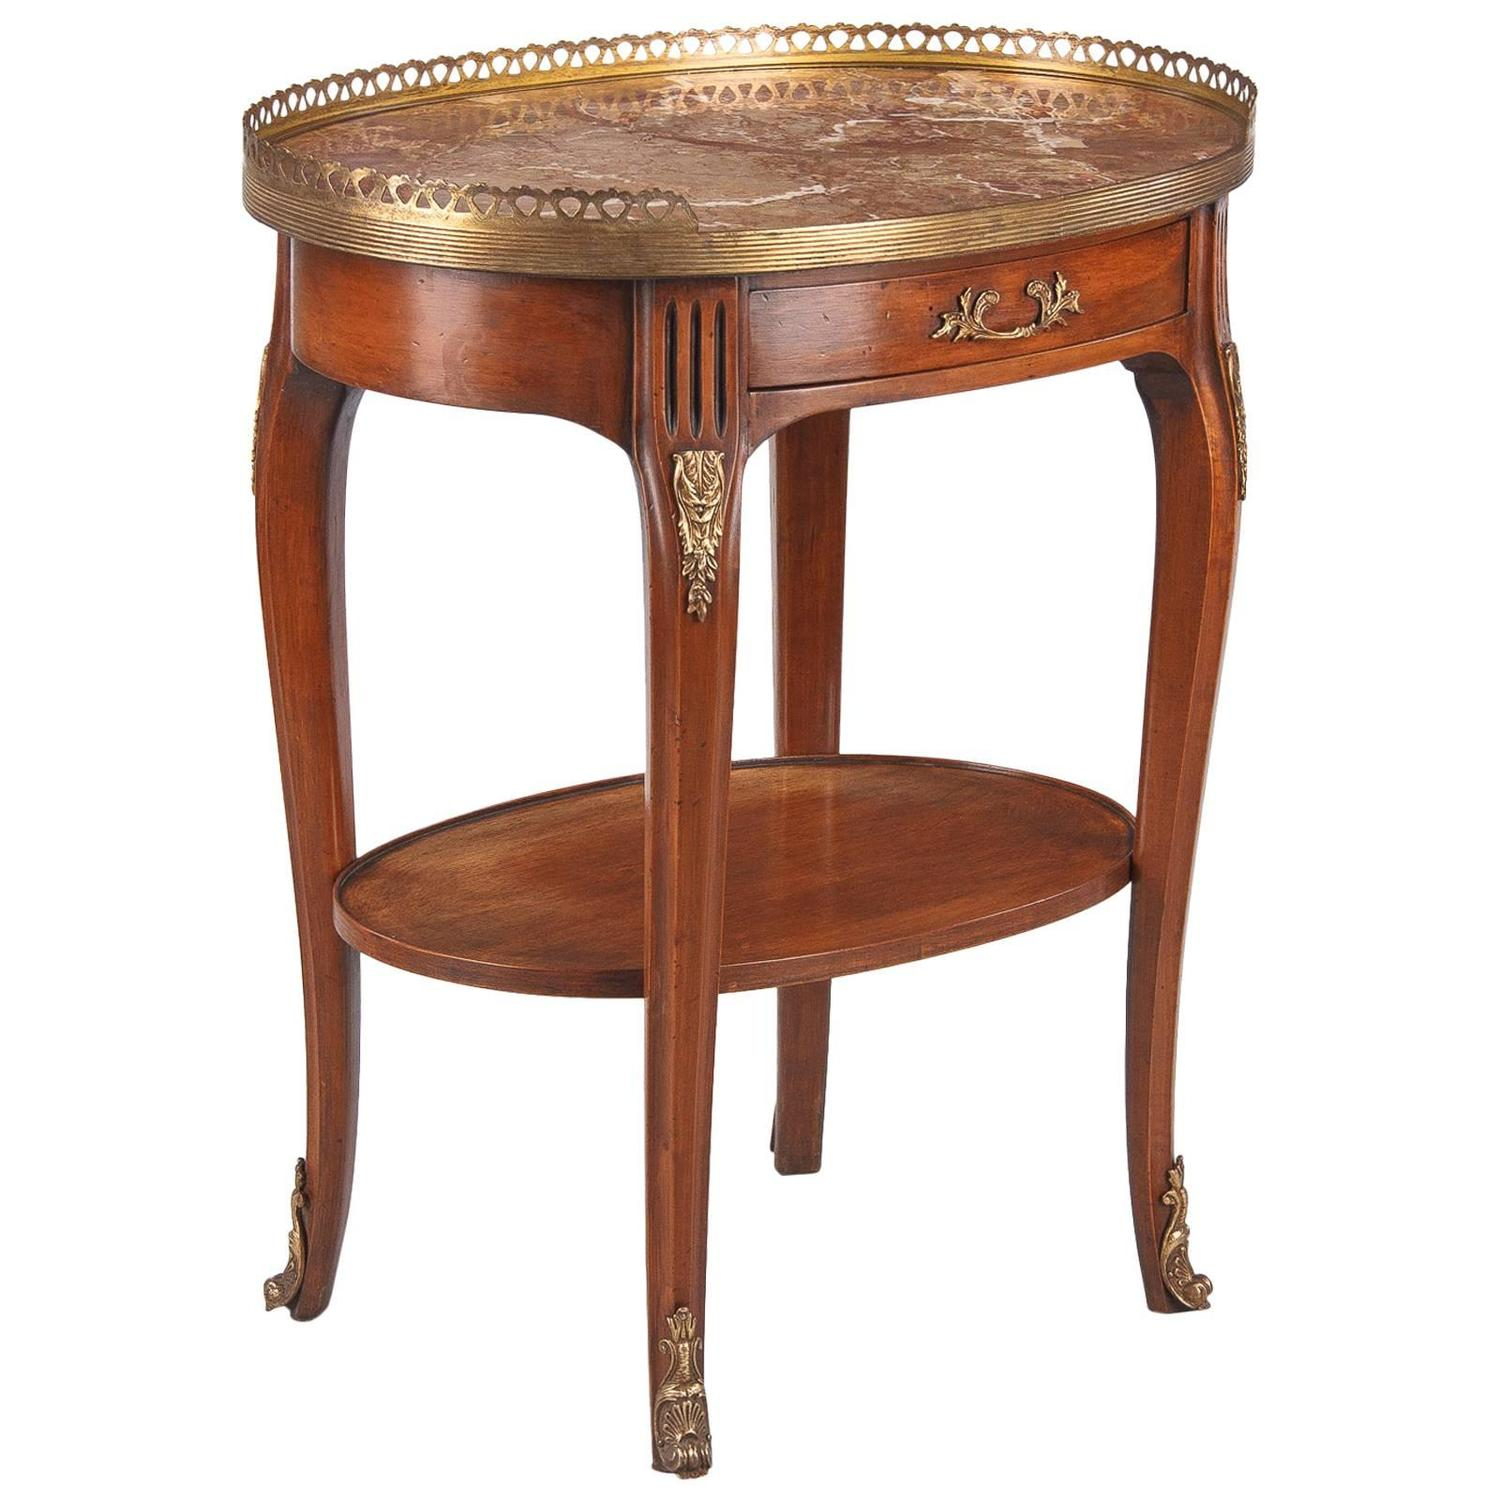 Louis XV Louis XVI Style Oval Marble Top Side Table 1920s at 1stdibs